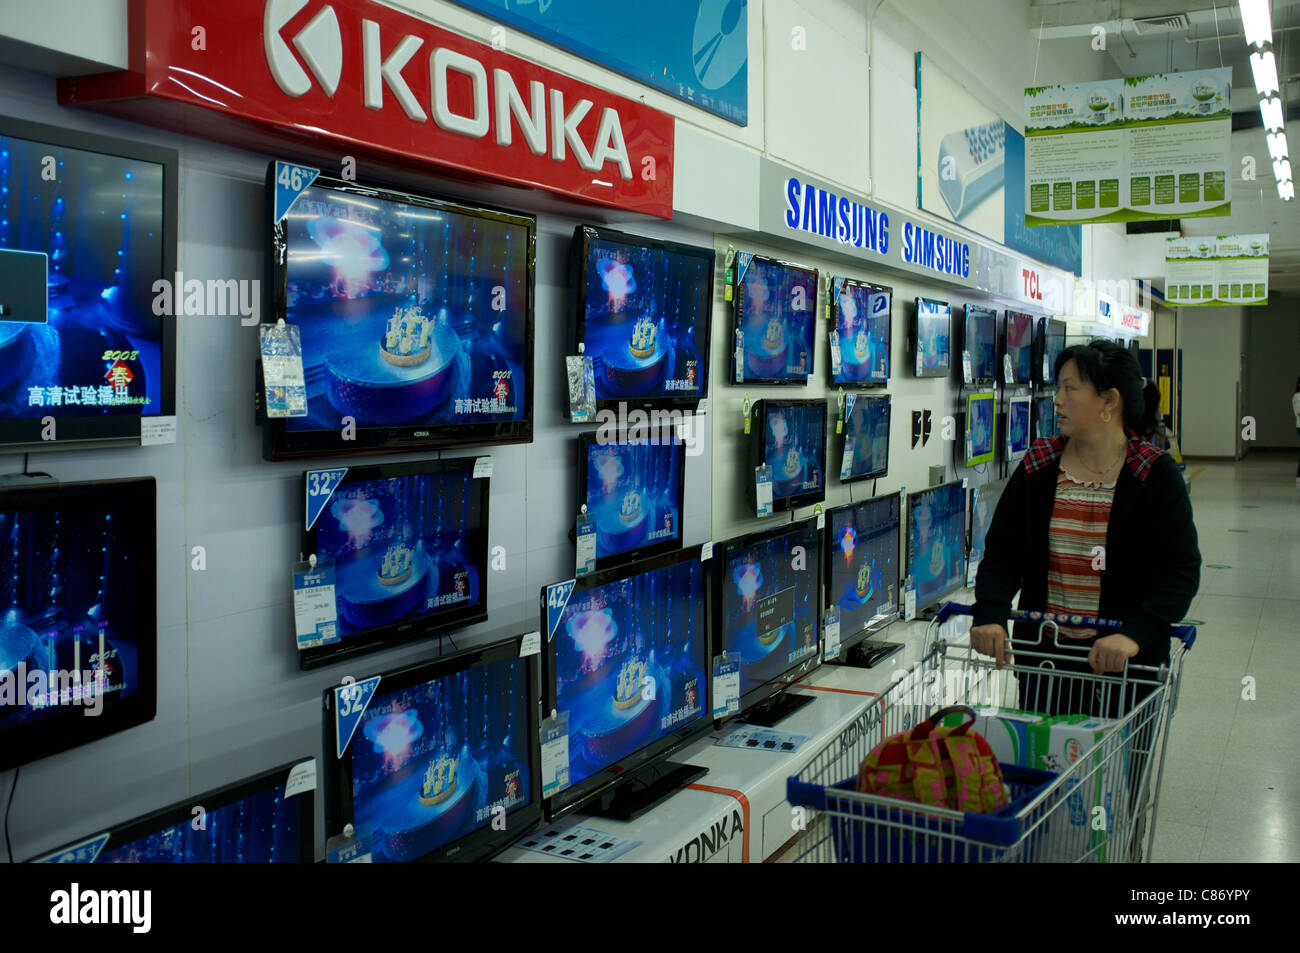 LCD TV sets in a supercenter of Wal-Mart in Beijing, China. 12-Oct-2011 - Stock Image